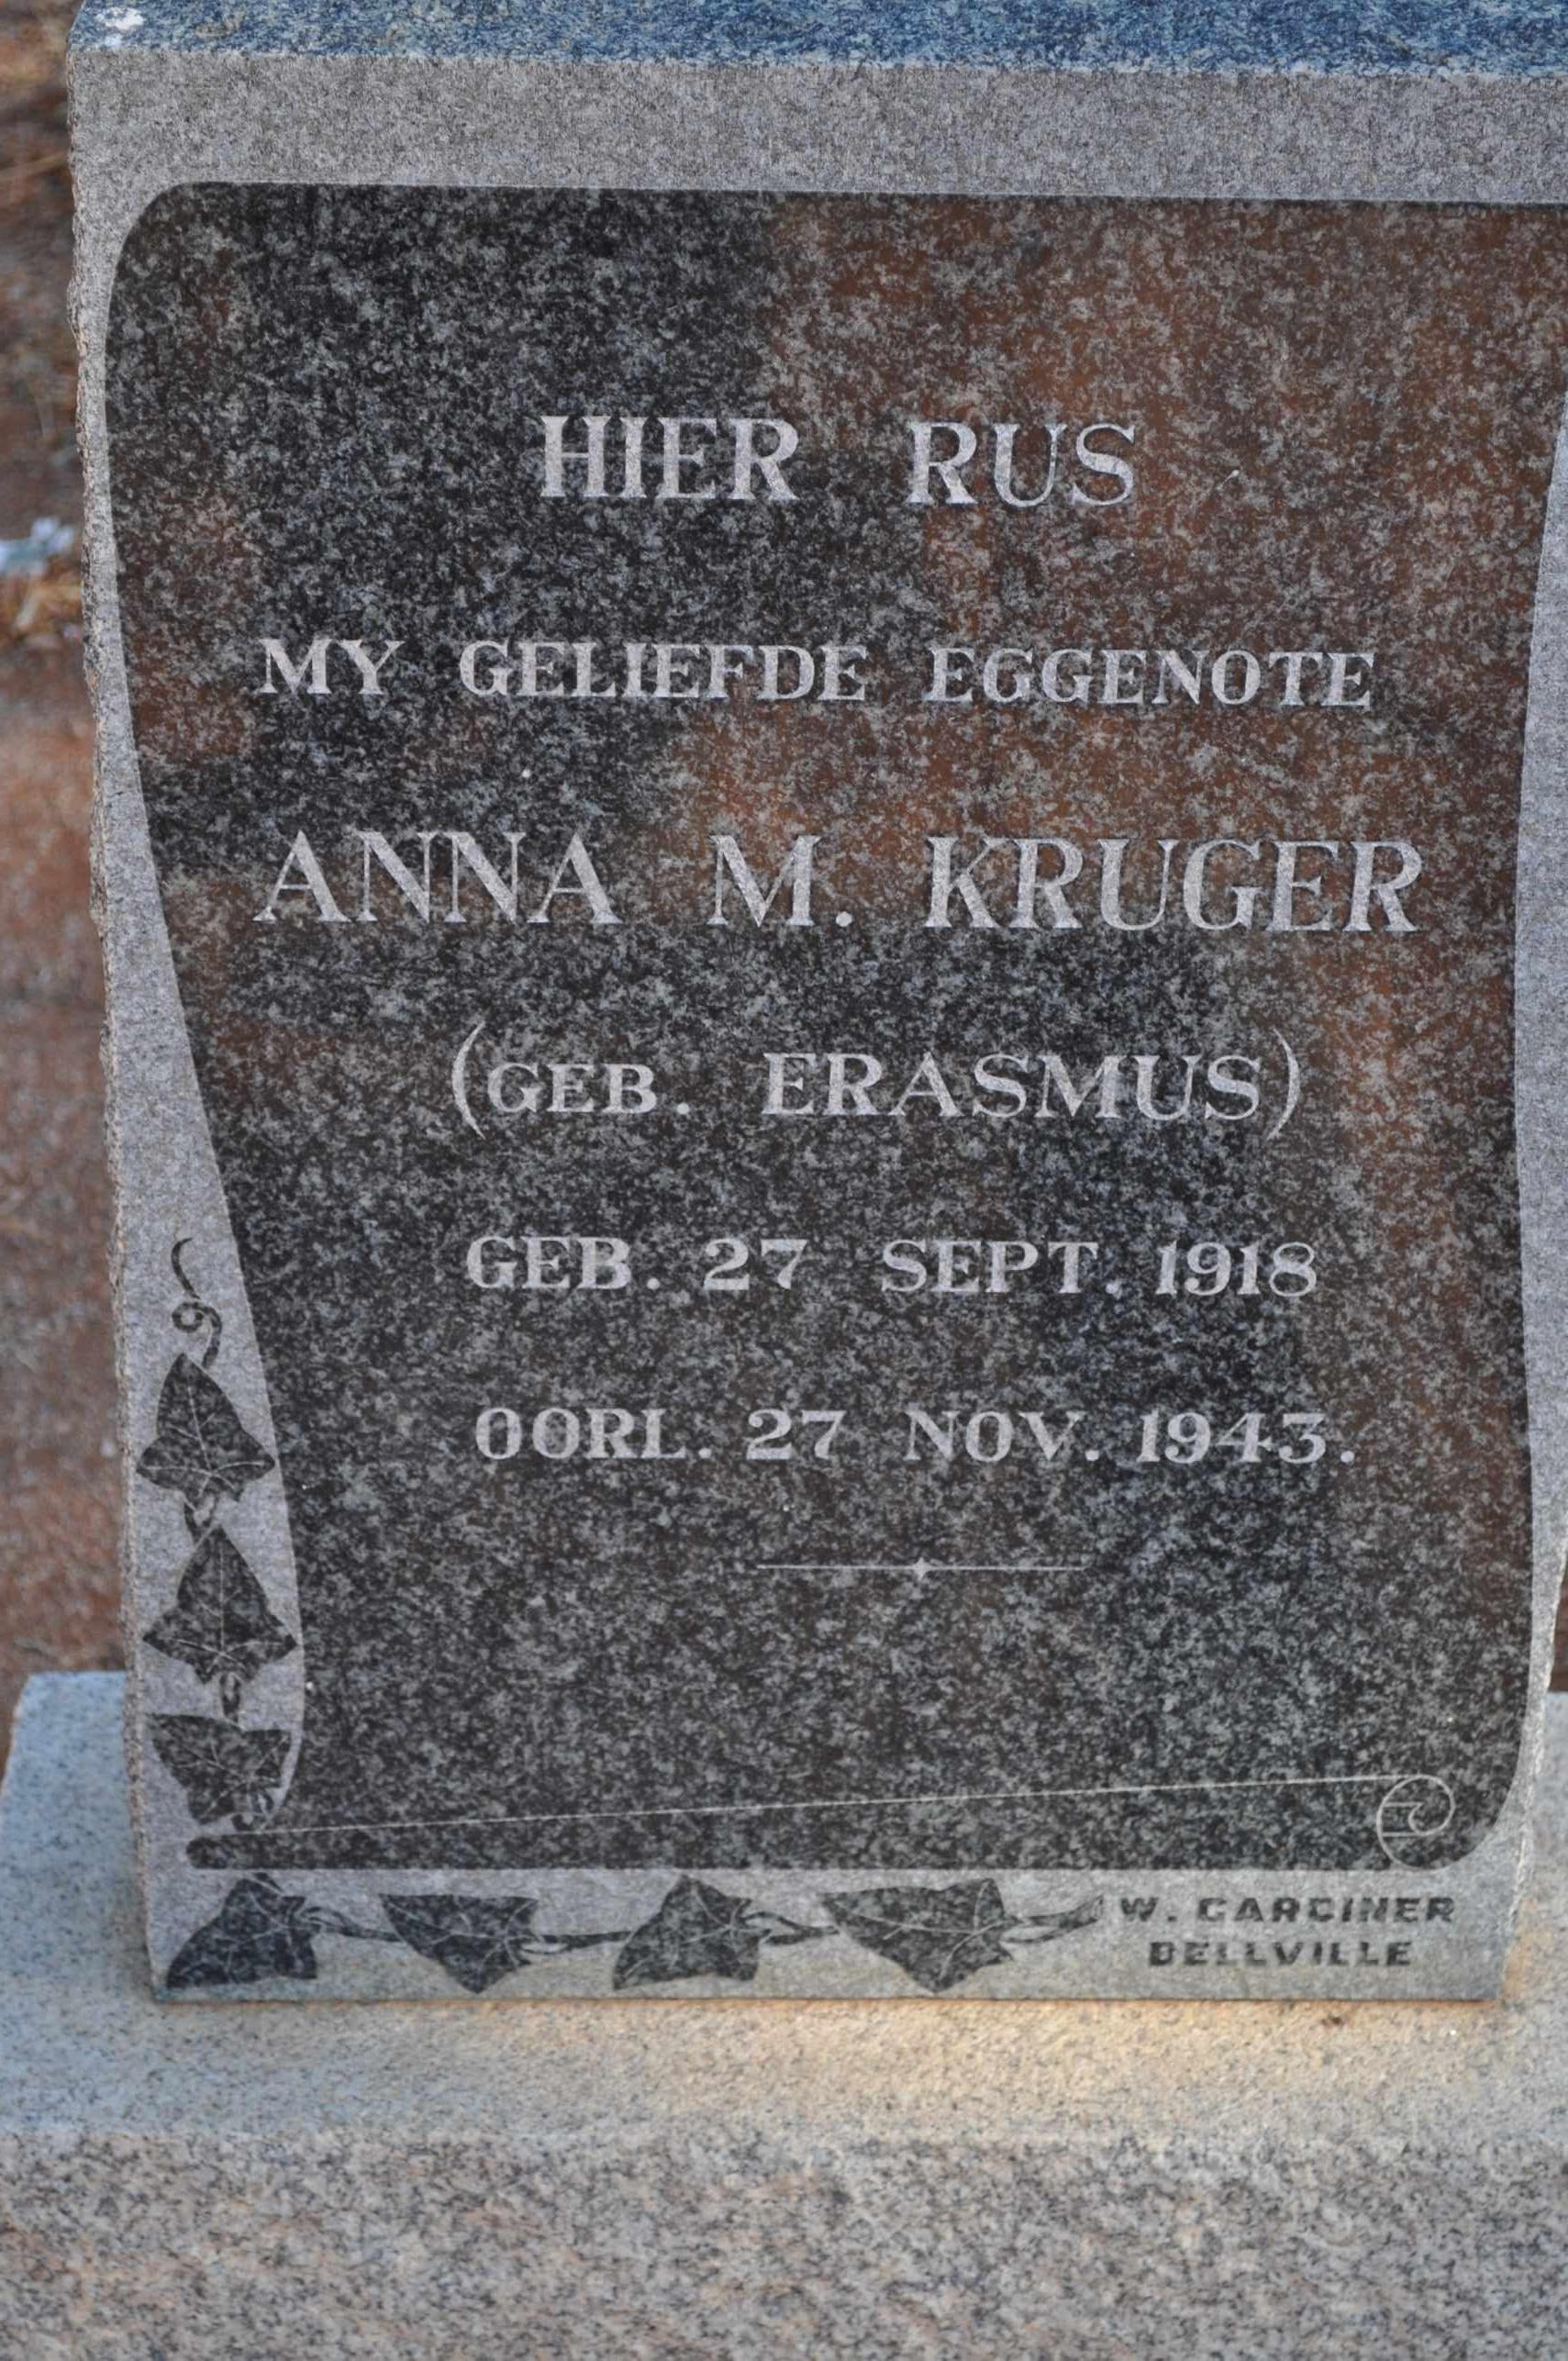 Kruger, Anna nee Erasmus born 27 September 1918 died 27 November 1943